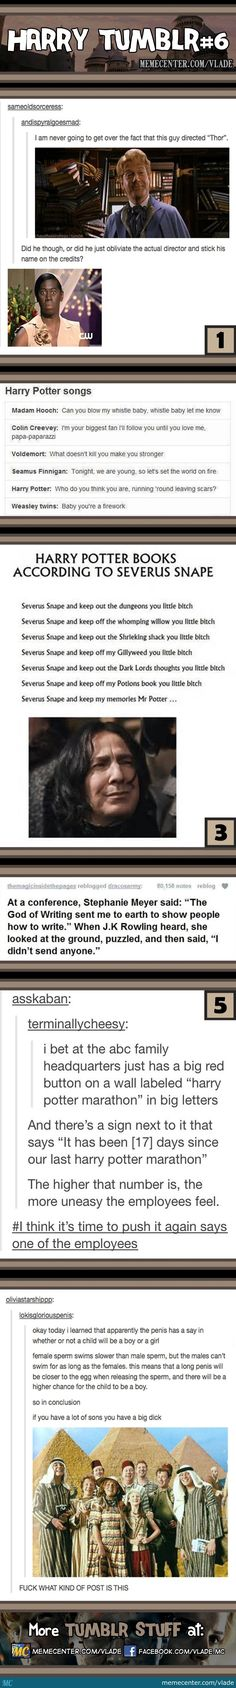 Harry Potter tumblr 6 | Harry Potter according to Snape. You almost made me cry you idjits.